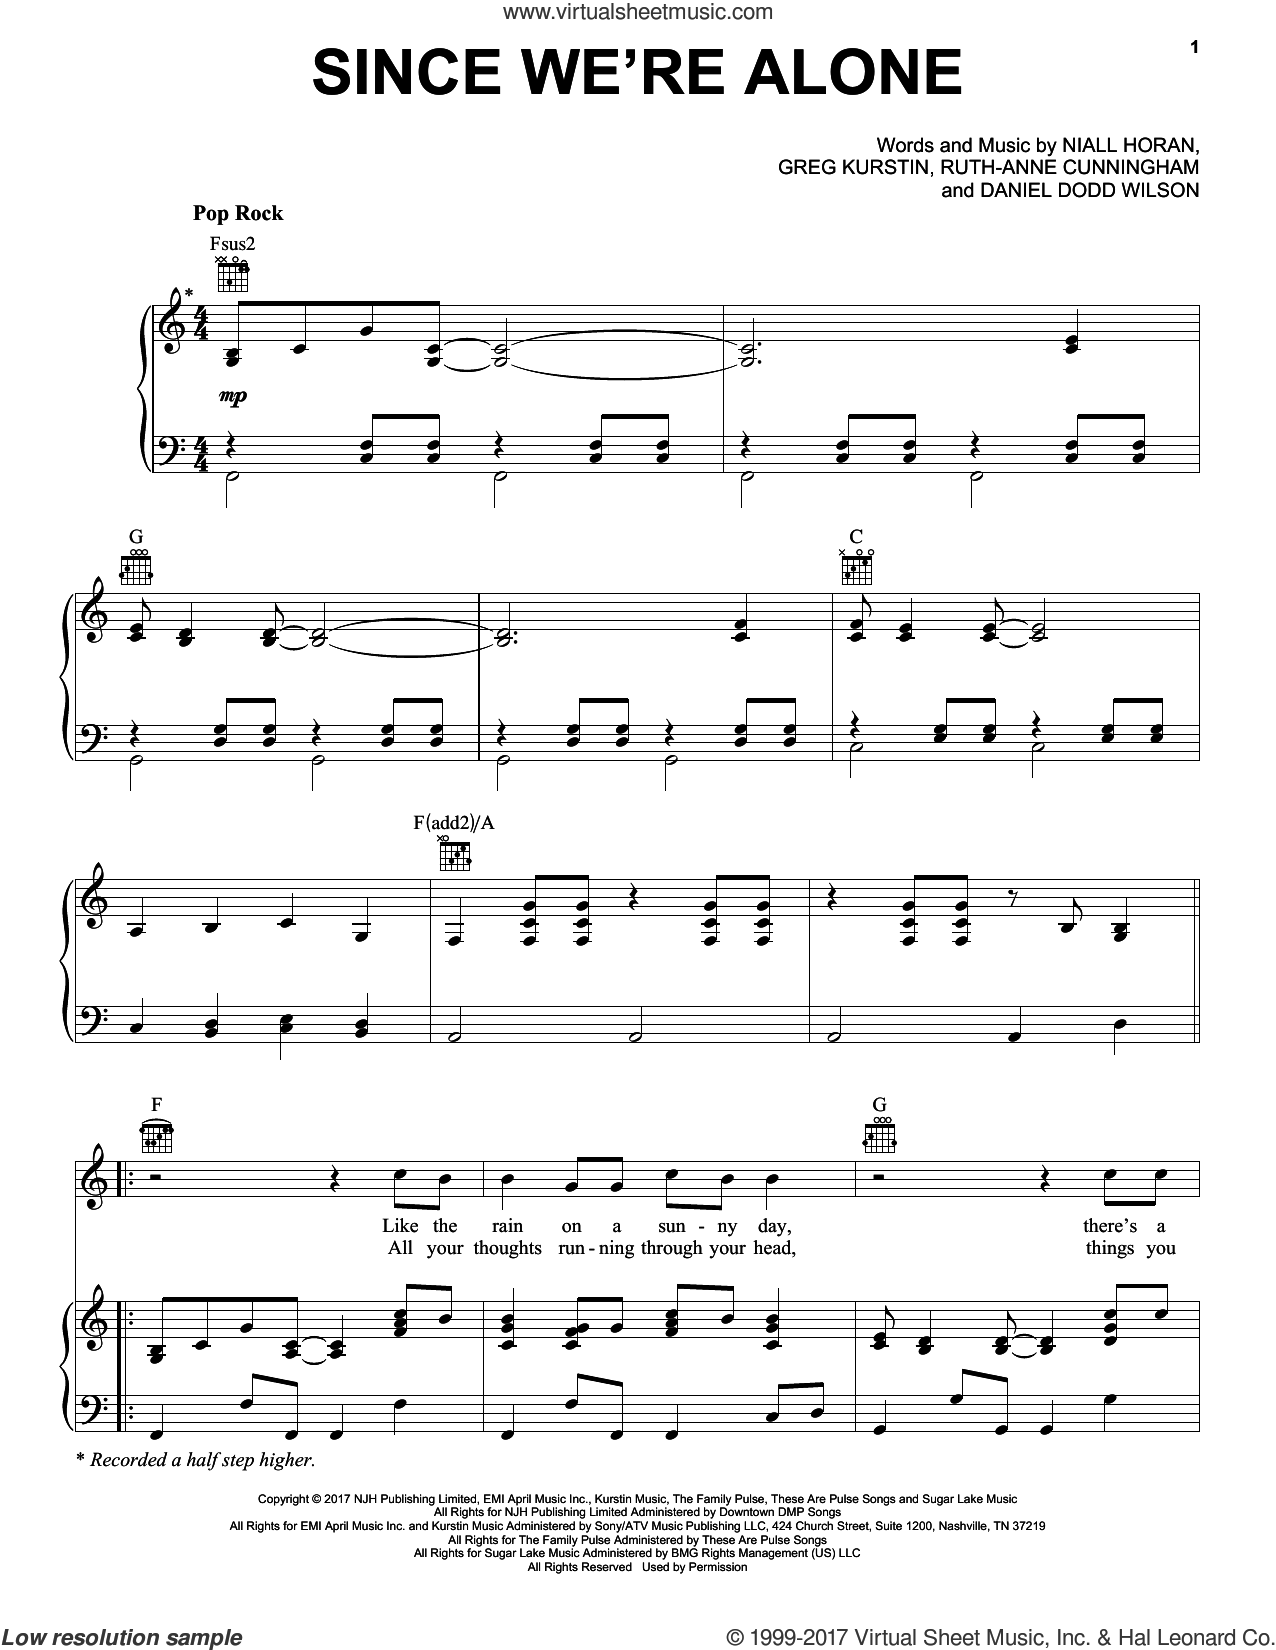 Since We're Alone sheet music for voice, piano or guitar by Niall Horan, Dan Wilson, Greg Kurstin and Ruth Anne Cunningham, intermediate skill level